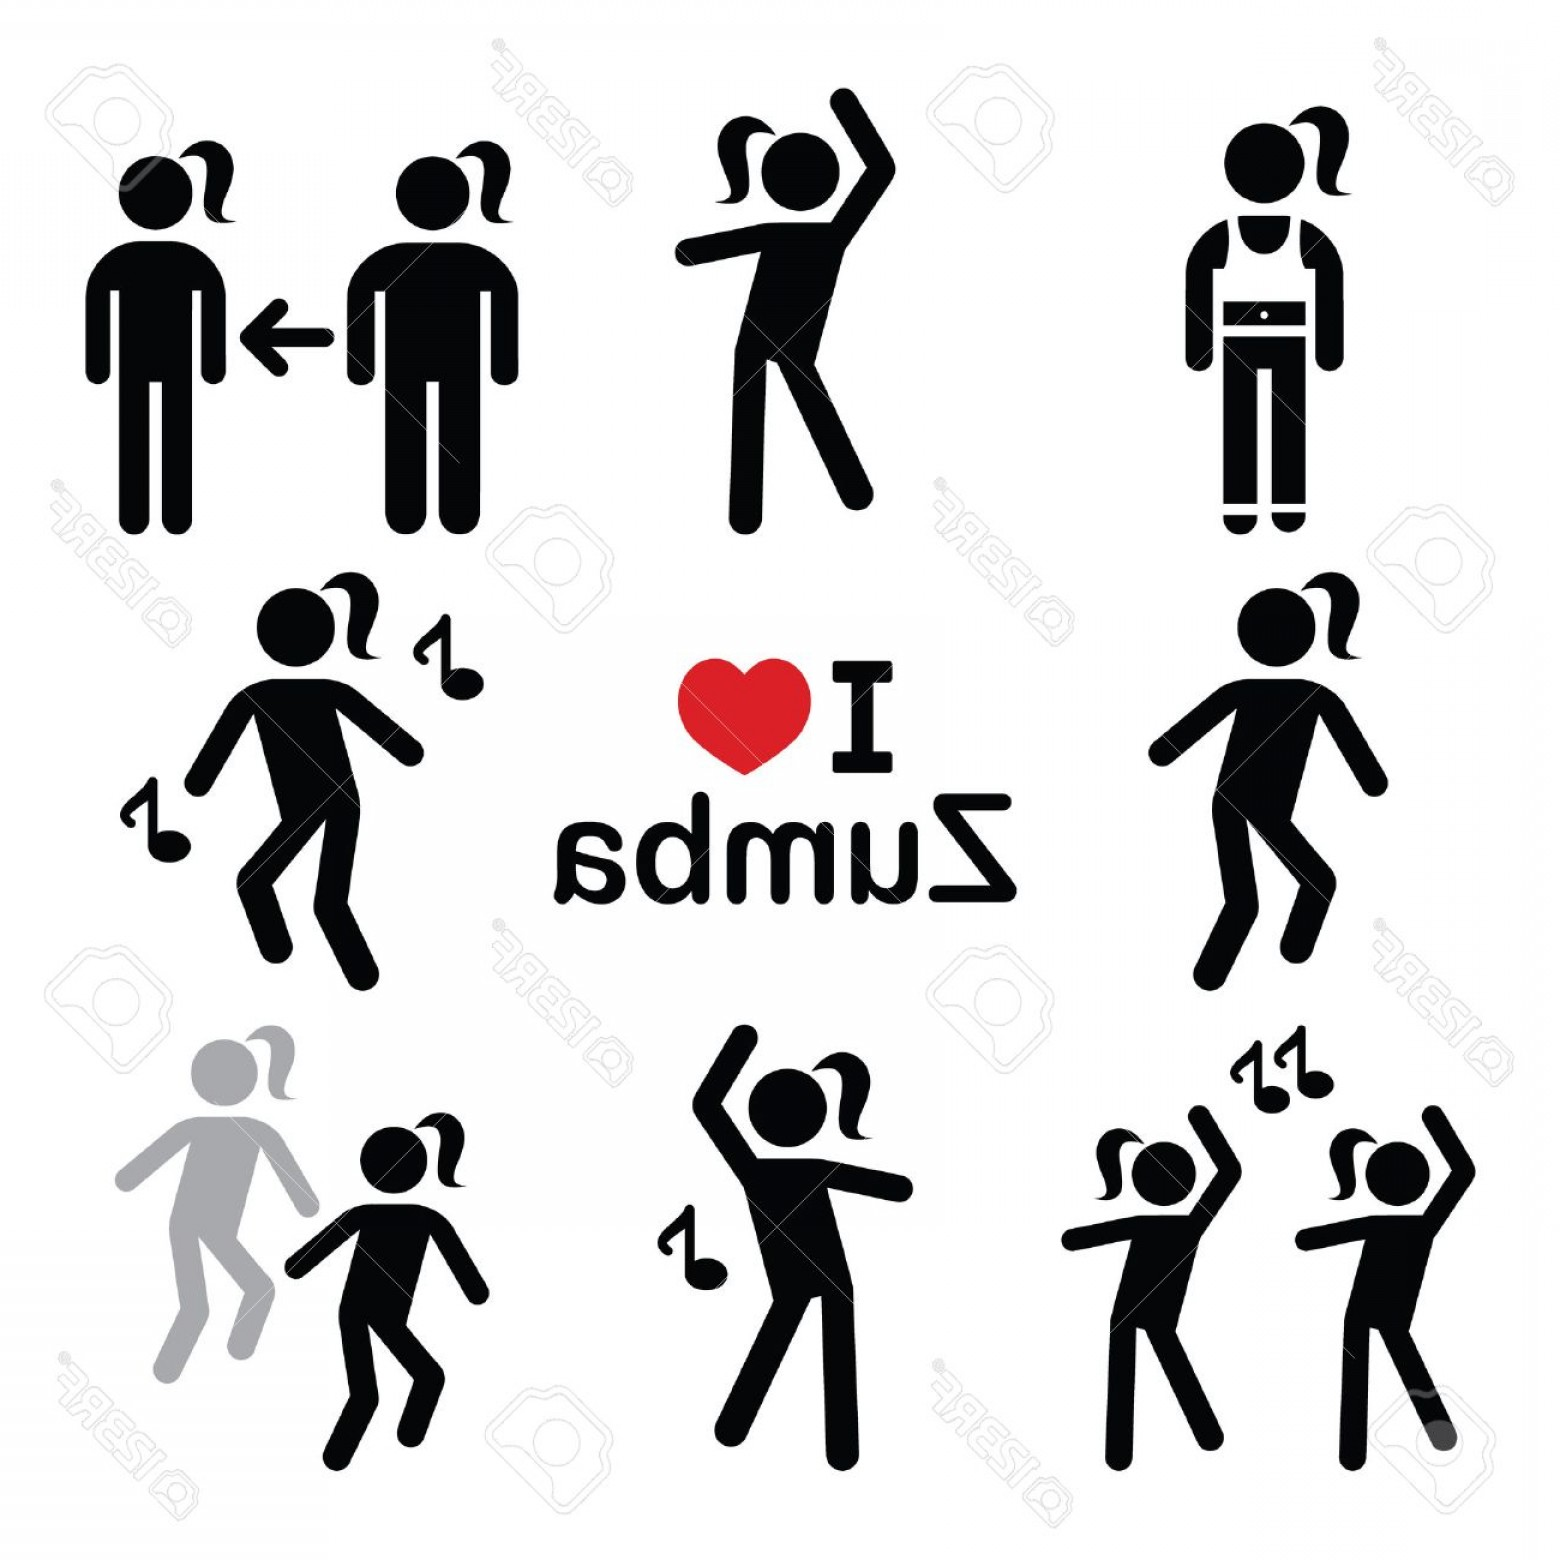 Zumba Vector Illustration: Photostock Vector Zumba Dance Workout Fitness Icons Set